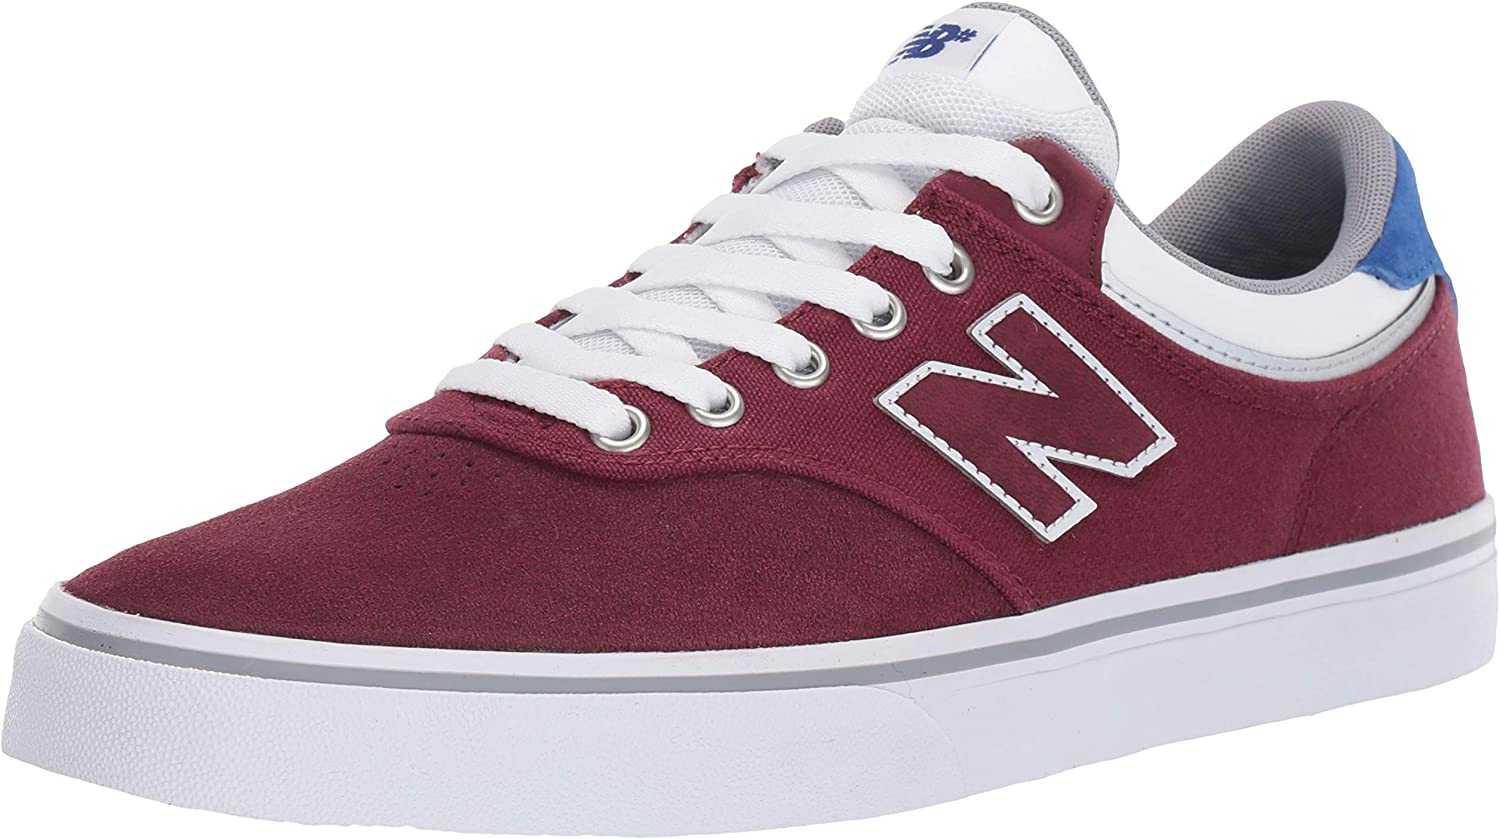 New Balance 255 Burgundy Royal bluee White